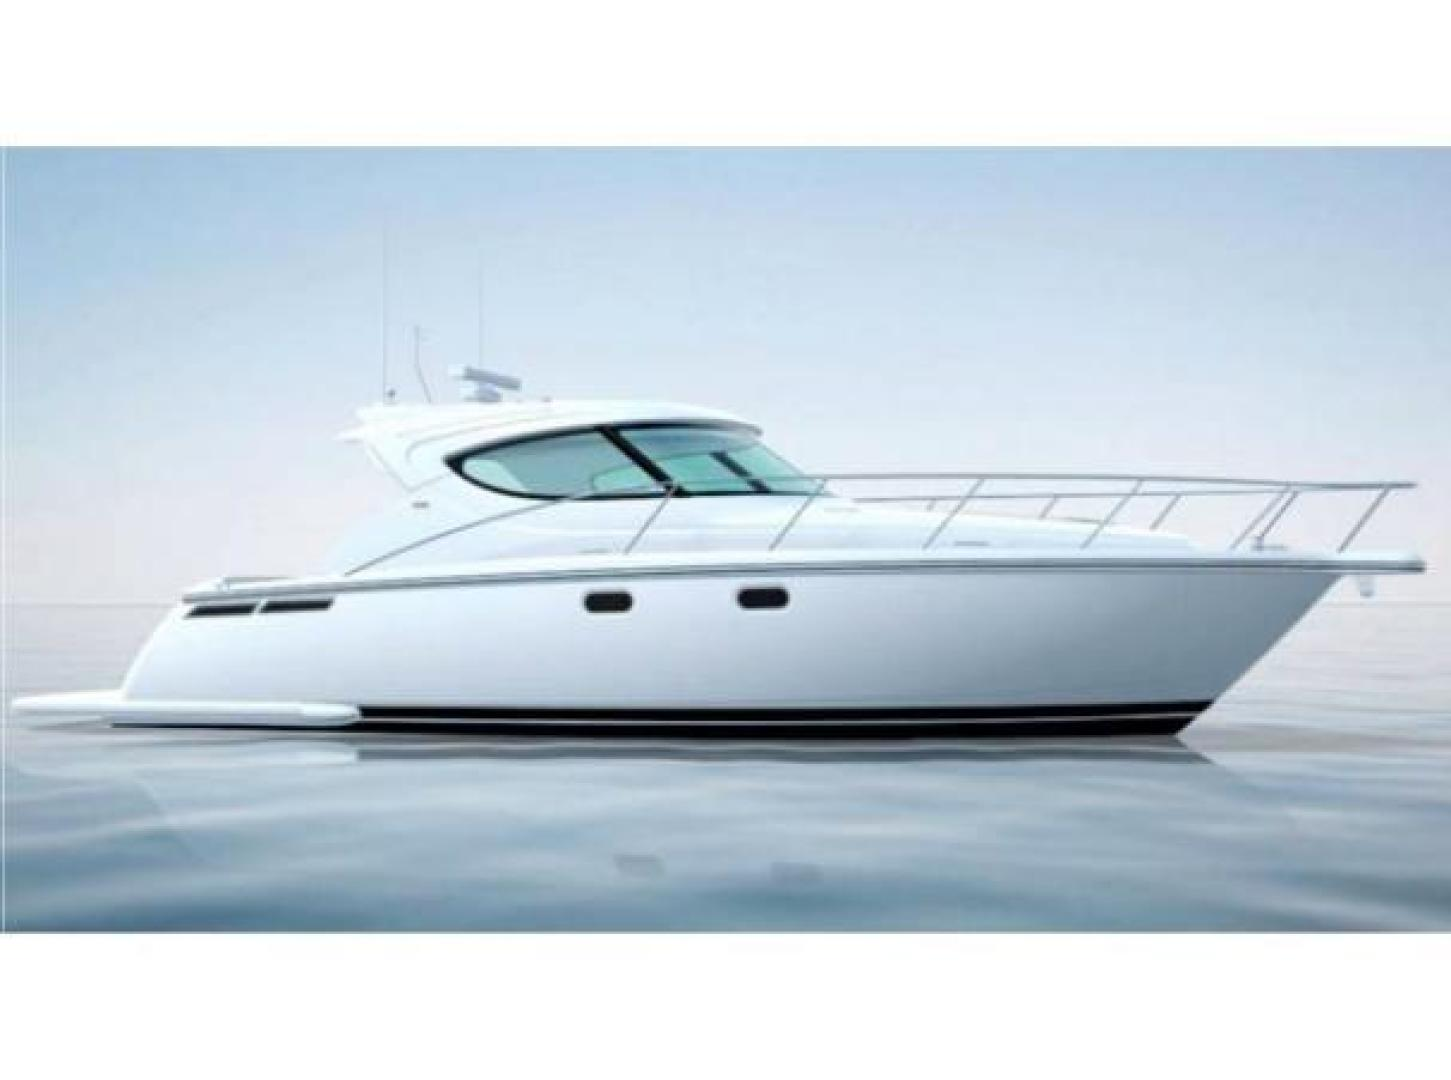 Tiara Yachts-4500 Sovran 2011-SOMEBEACH SOMEWHERE Fort Lauderdale-Florida-United States-1444116 | Thumbnail